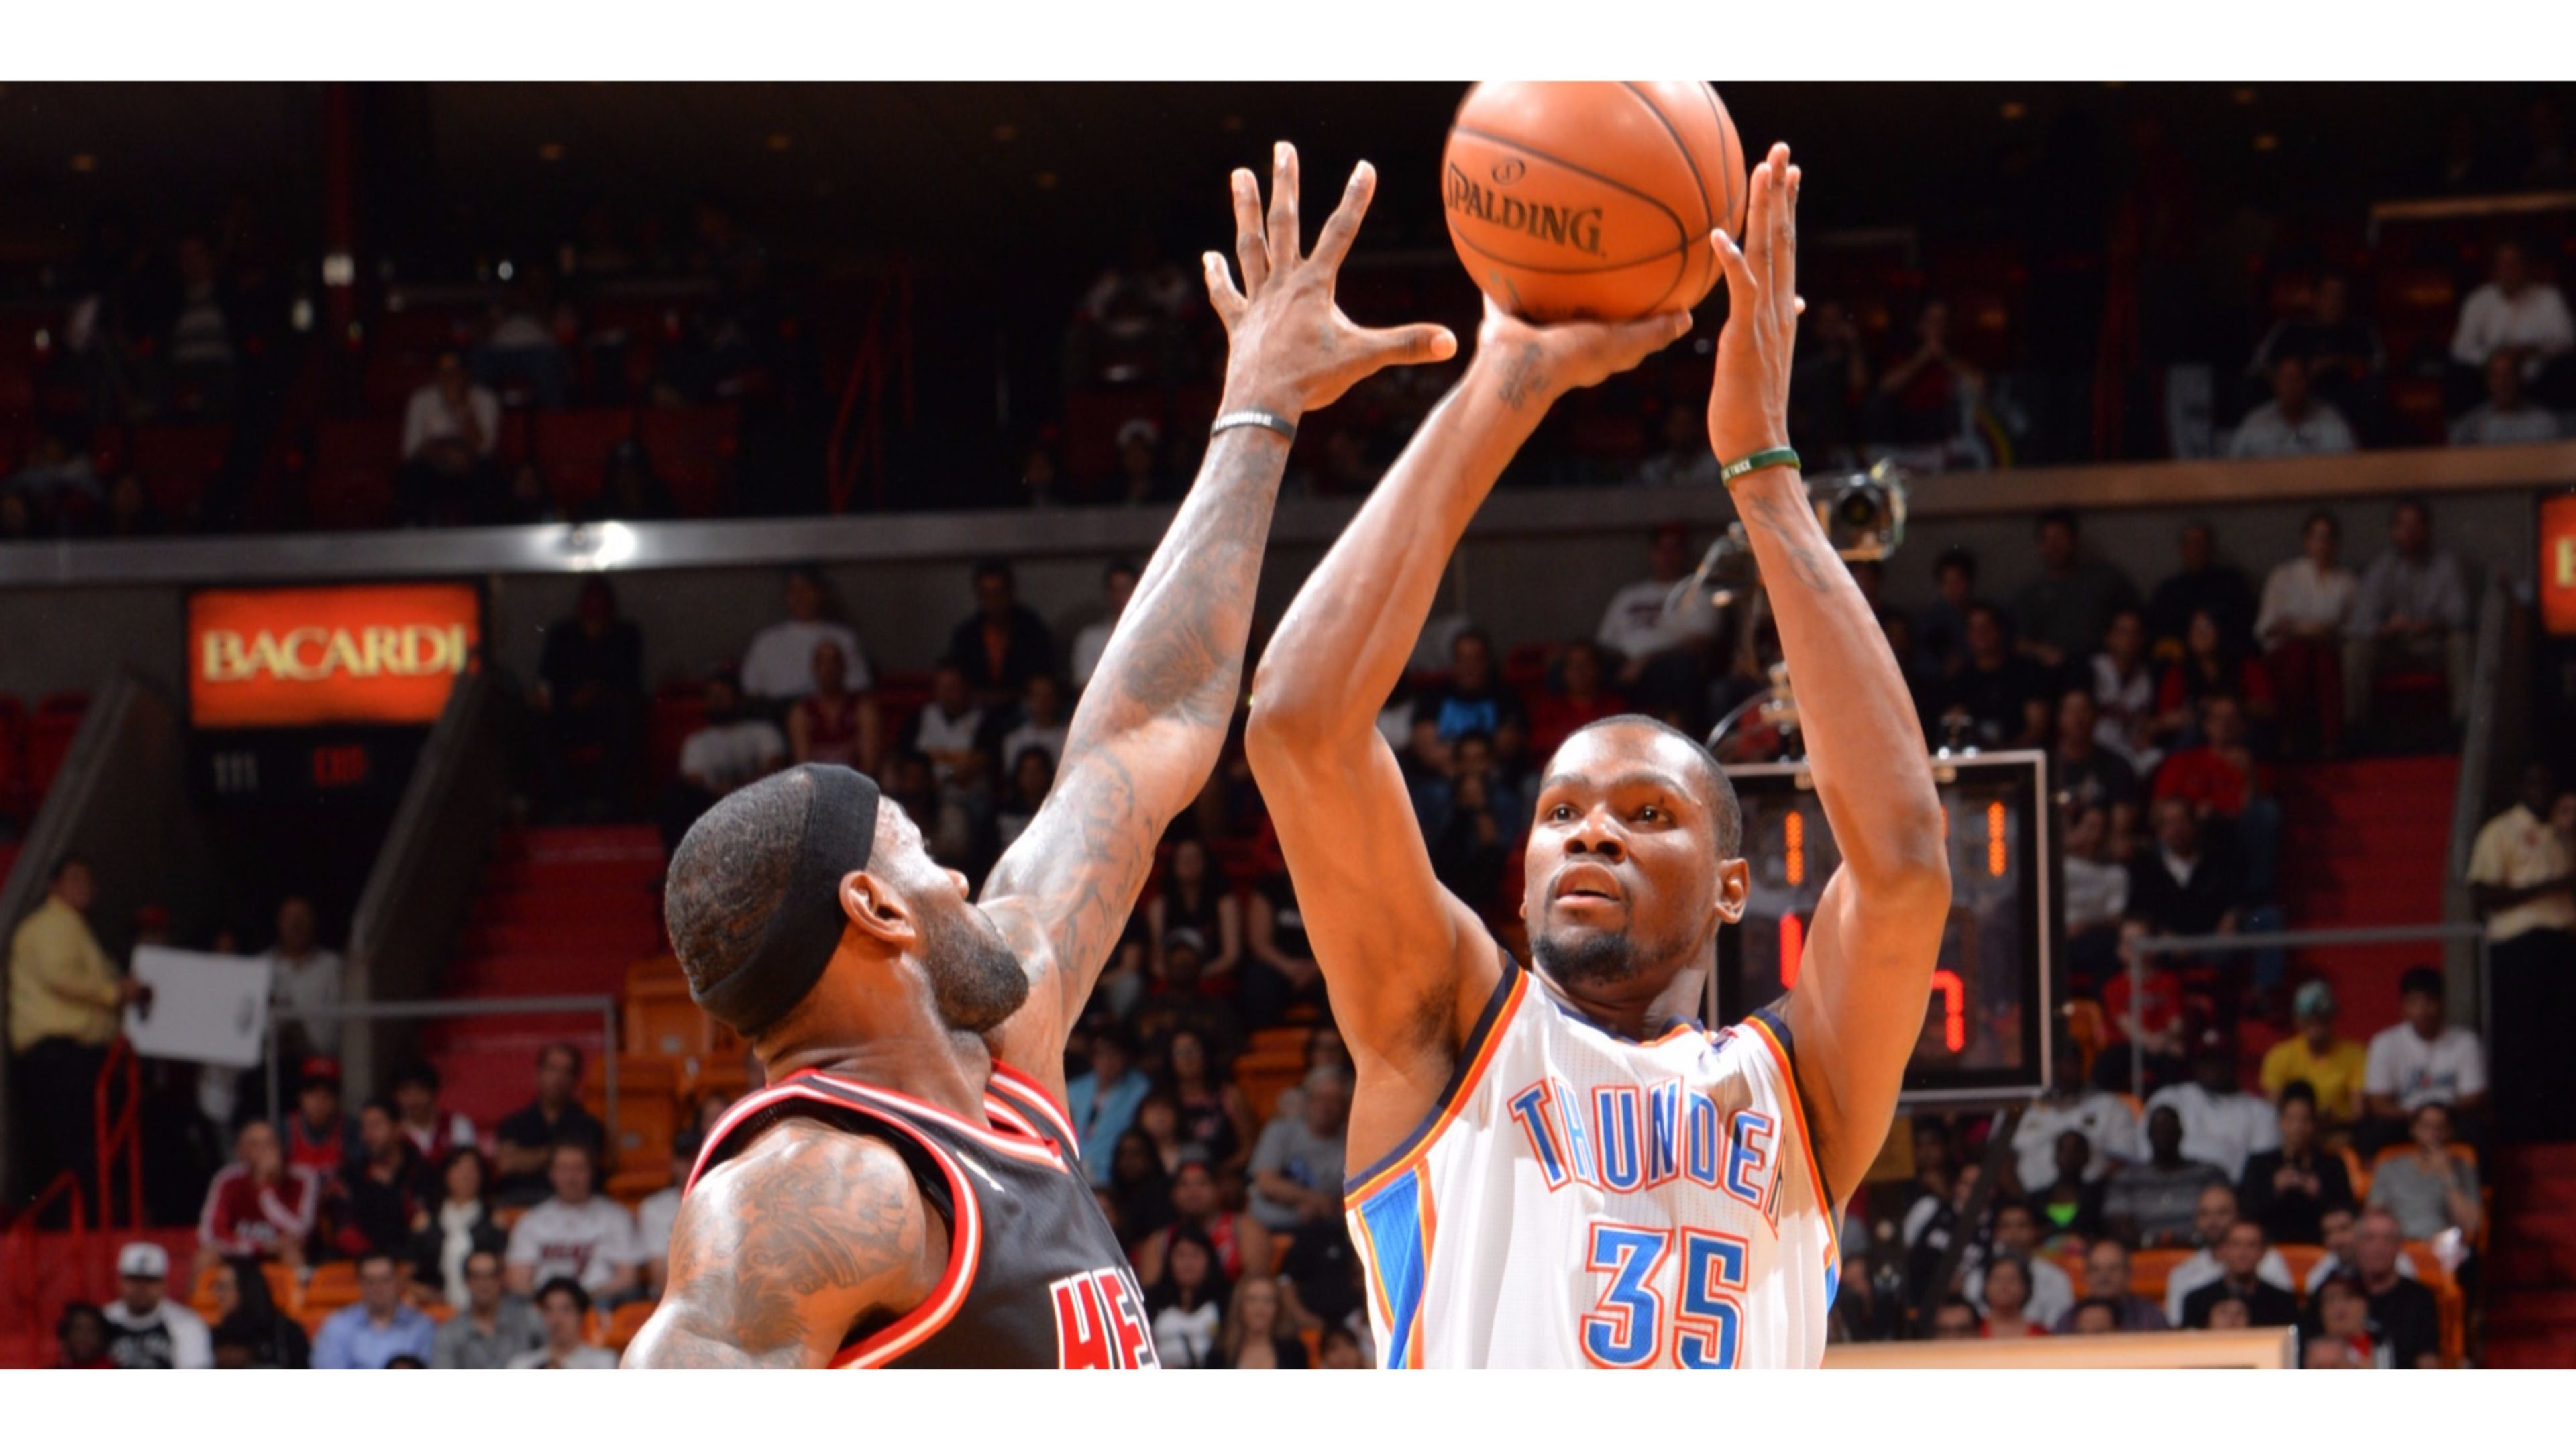 Res: 3840x2160, HDQ Picture | Background ID: 396,  px Kevin Durant Shooting